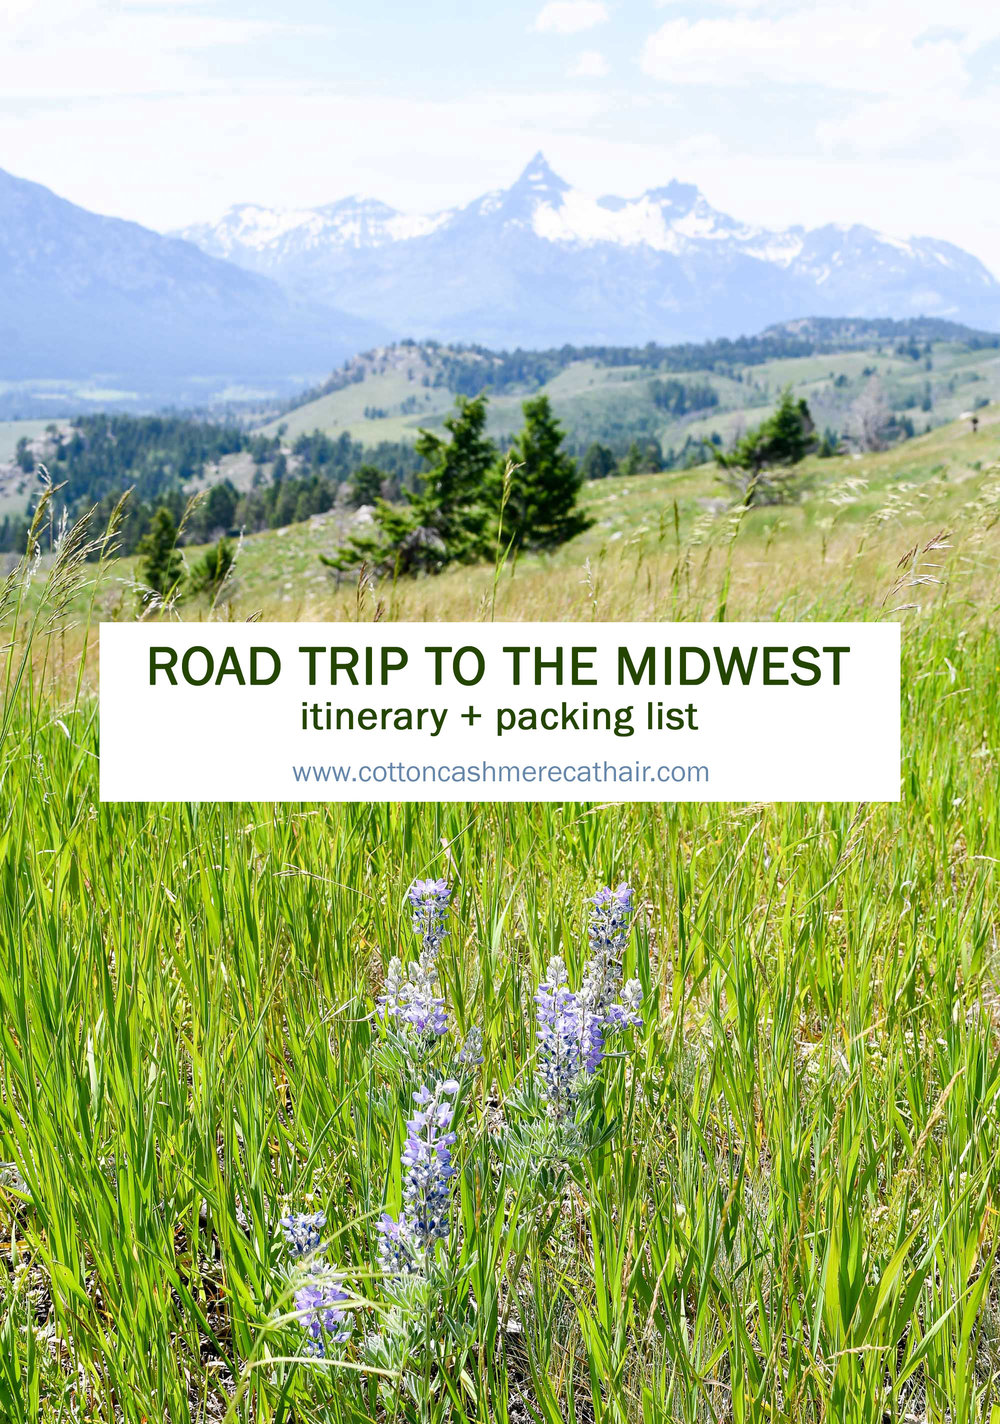 2018 travel: Road trip to the midwest — Cotton Cashmere Cat Hair